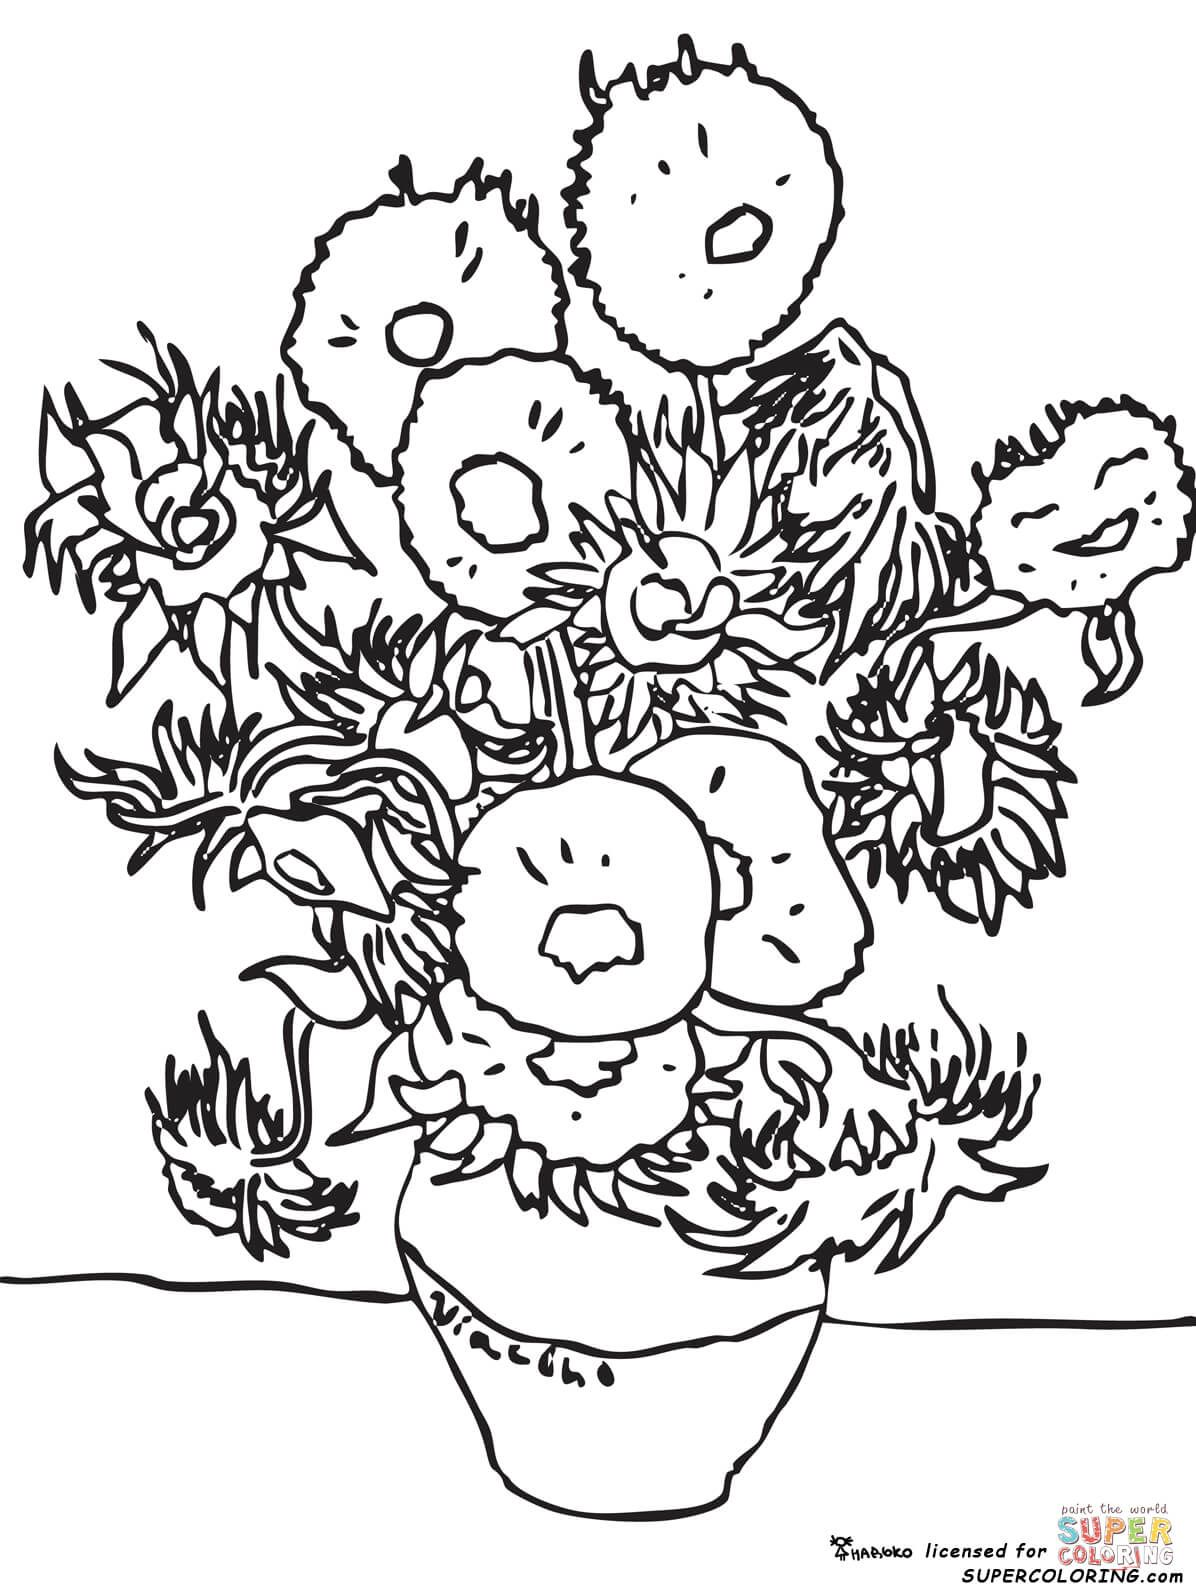 Sunflowers By Vincent Van Gogh Coloring Page From Vincent Van Gogh